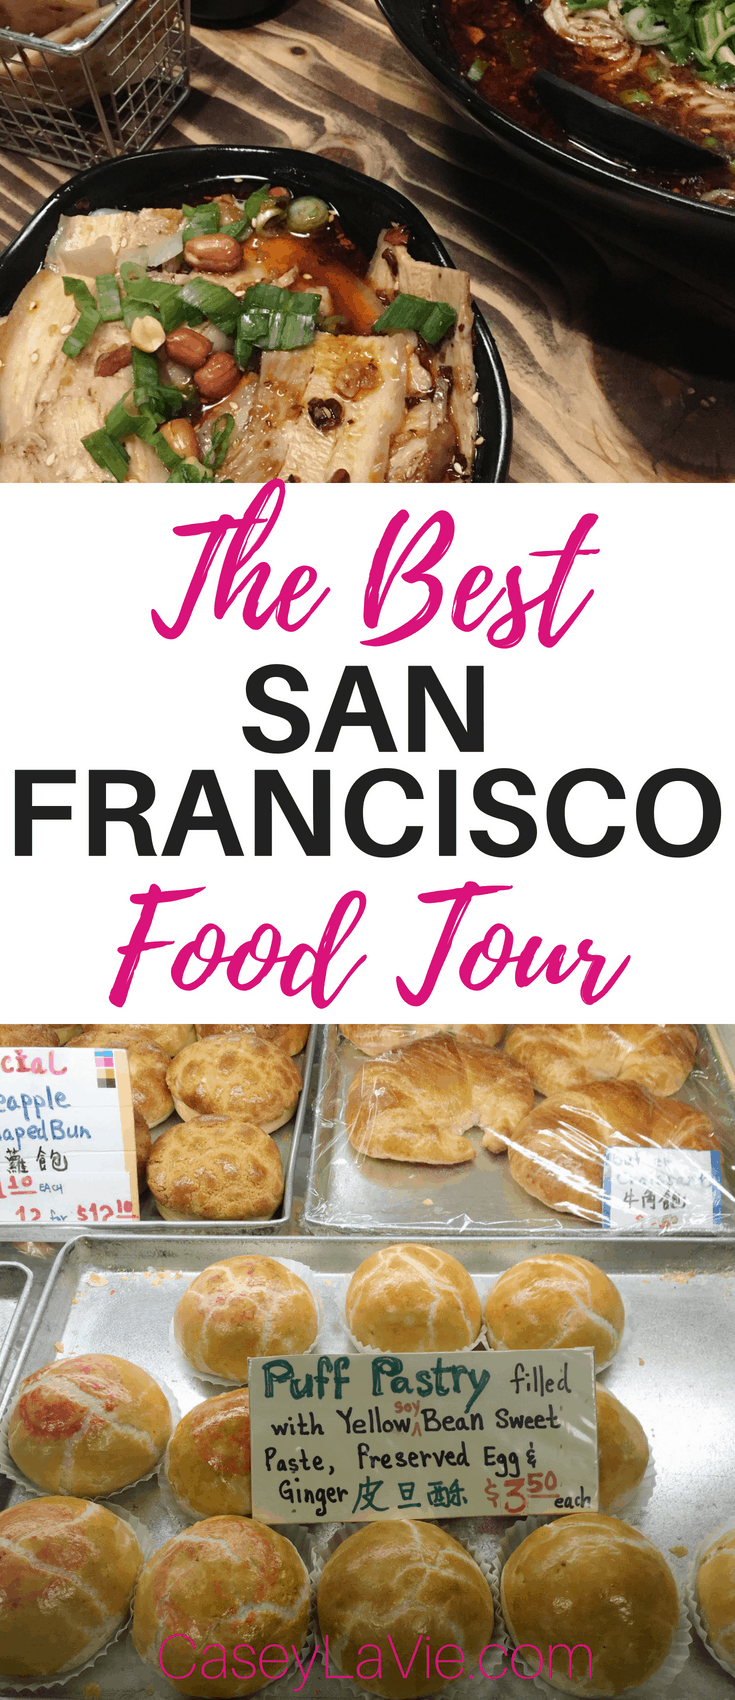 Add a walking food tour to your list of things to do in San Francisco. Enjoy Chinatown and North Beach must-have food during the day or night walking food tour with Local Tastes of the City.